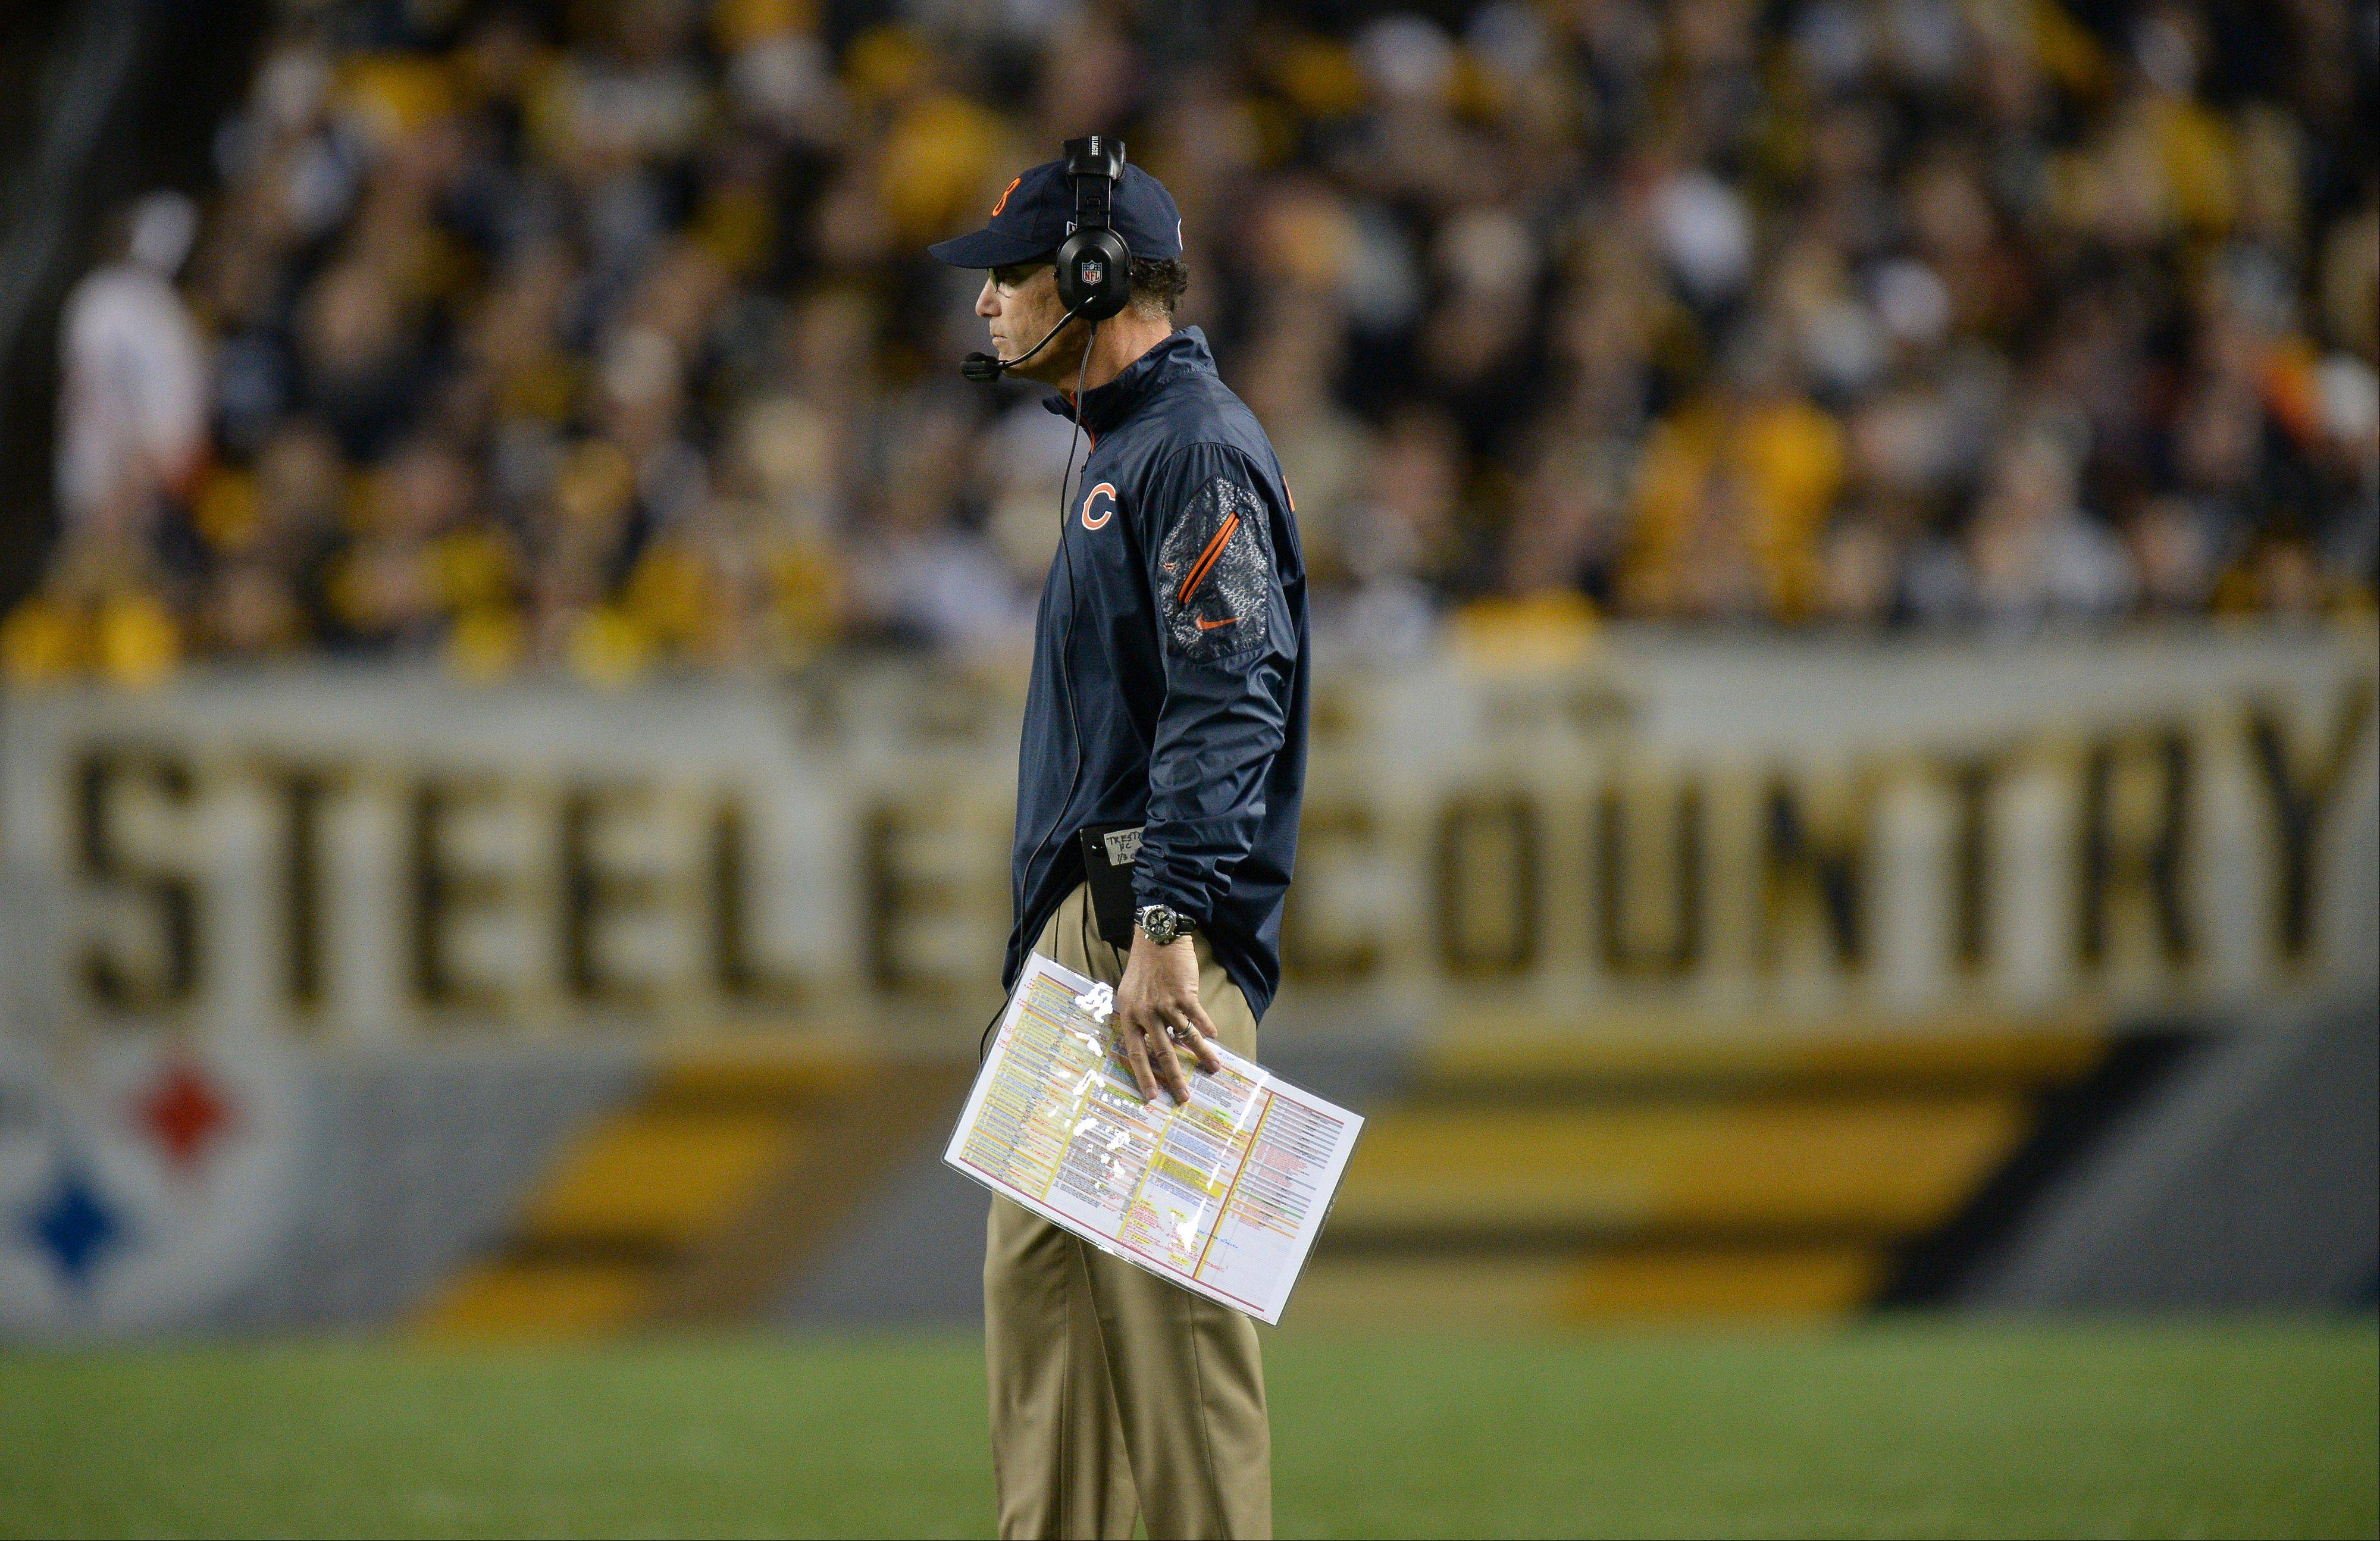 Chicago Bears head coach Marc Trestman on the field during a timeout in the first quarter of an NFL football game against the Pittsburgh Steelers on Sunday, Sept. 22, 2013, in Pittsburgh. The Bears won 40-23.